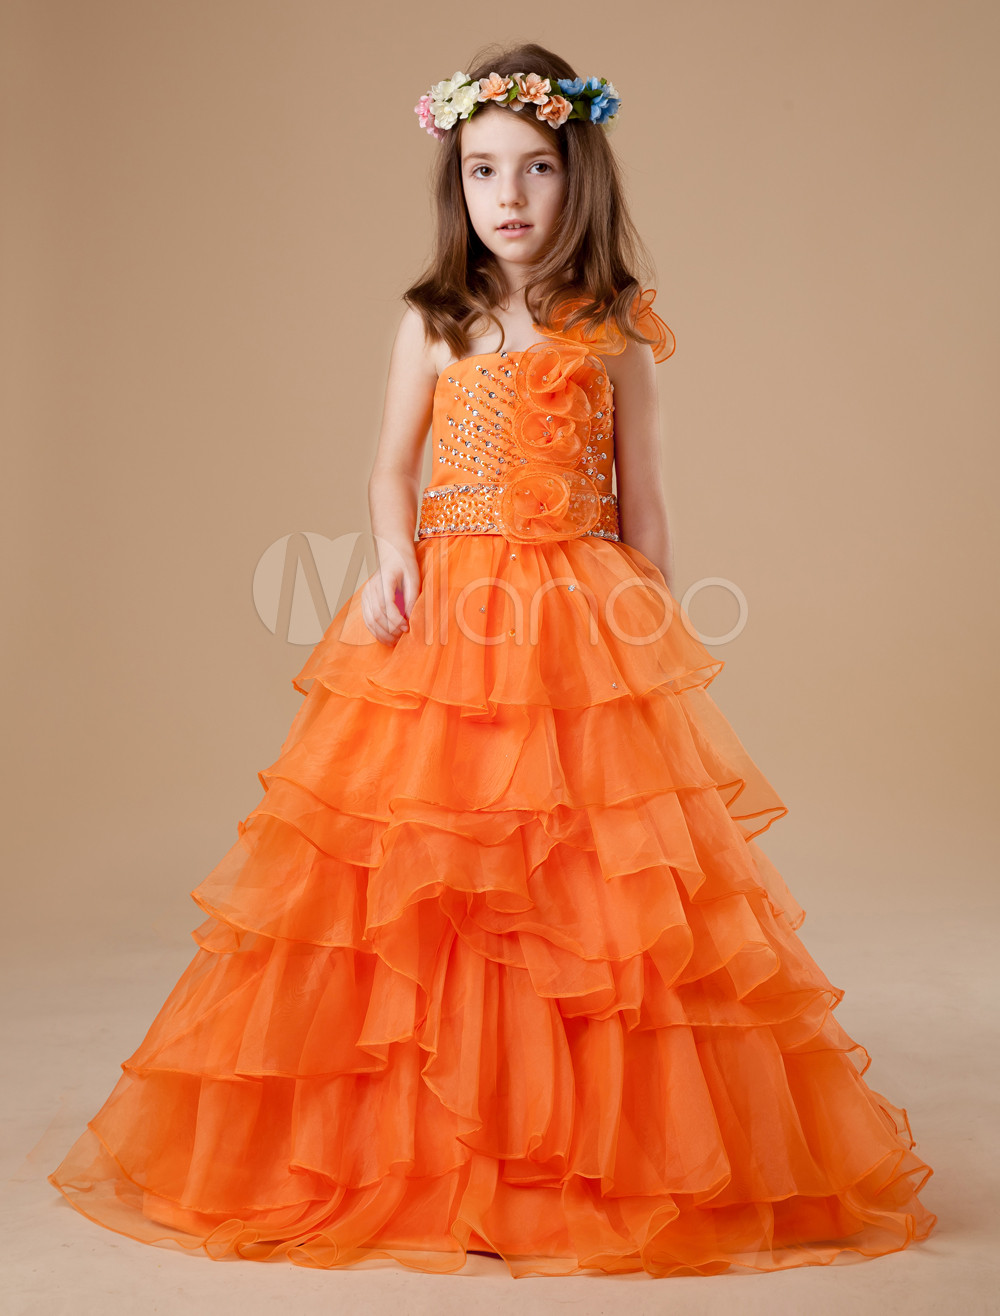 Discover Orange Dresses at Macy's, with Women's Orange Dresses, Juniors Orange Dresses and Girls Orange Dresses at the ready.